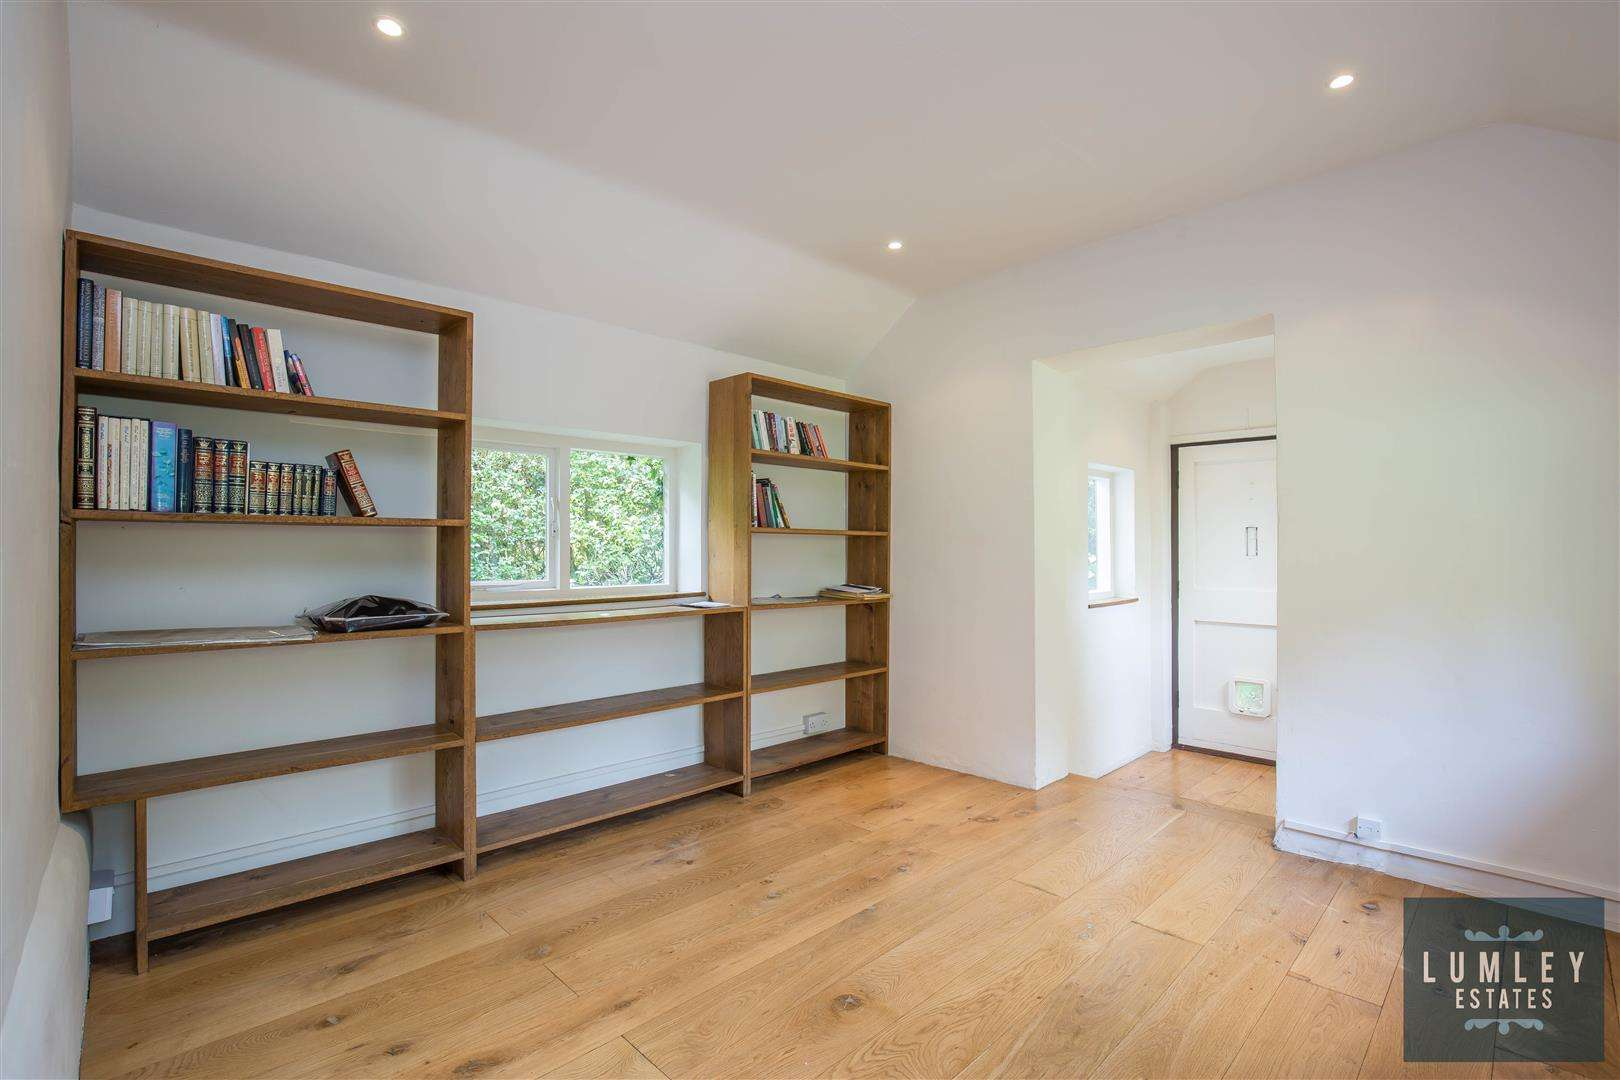 4 bed for sale in Park Street - (Property Image 5)